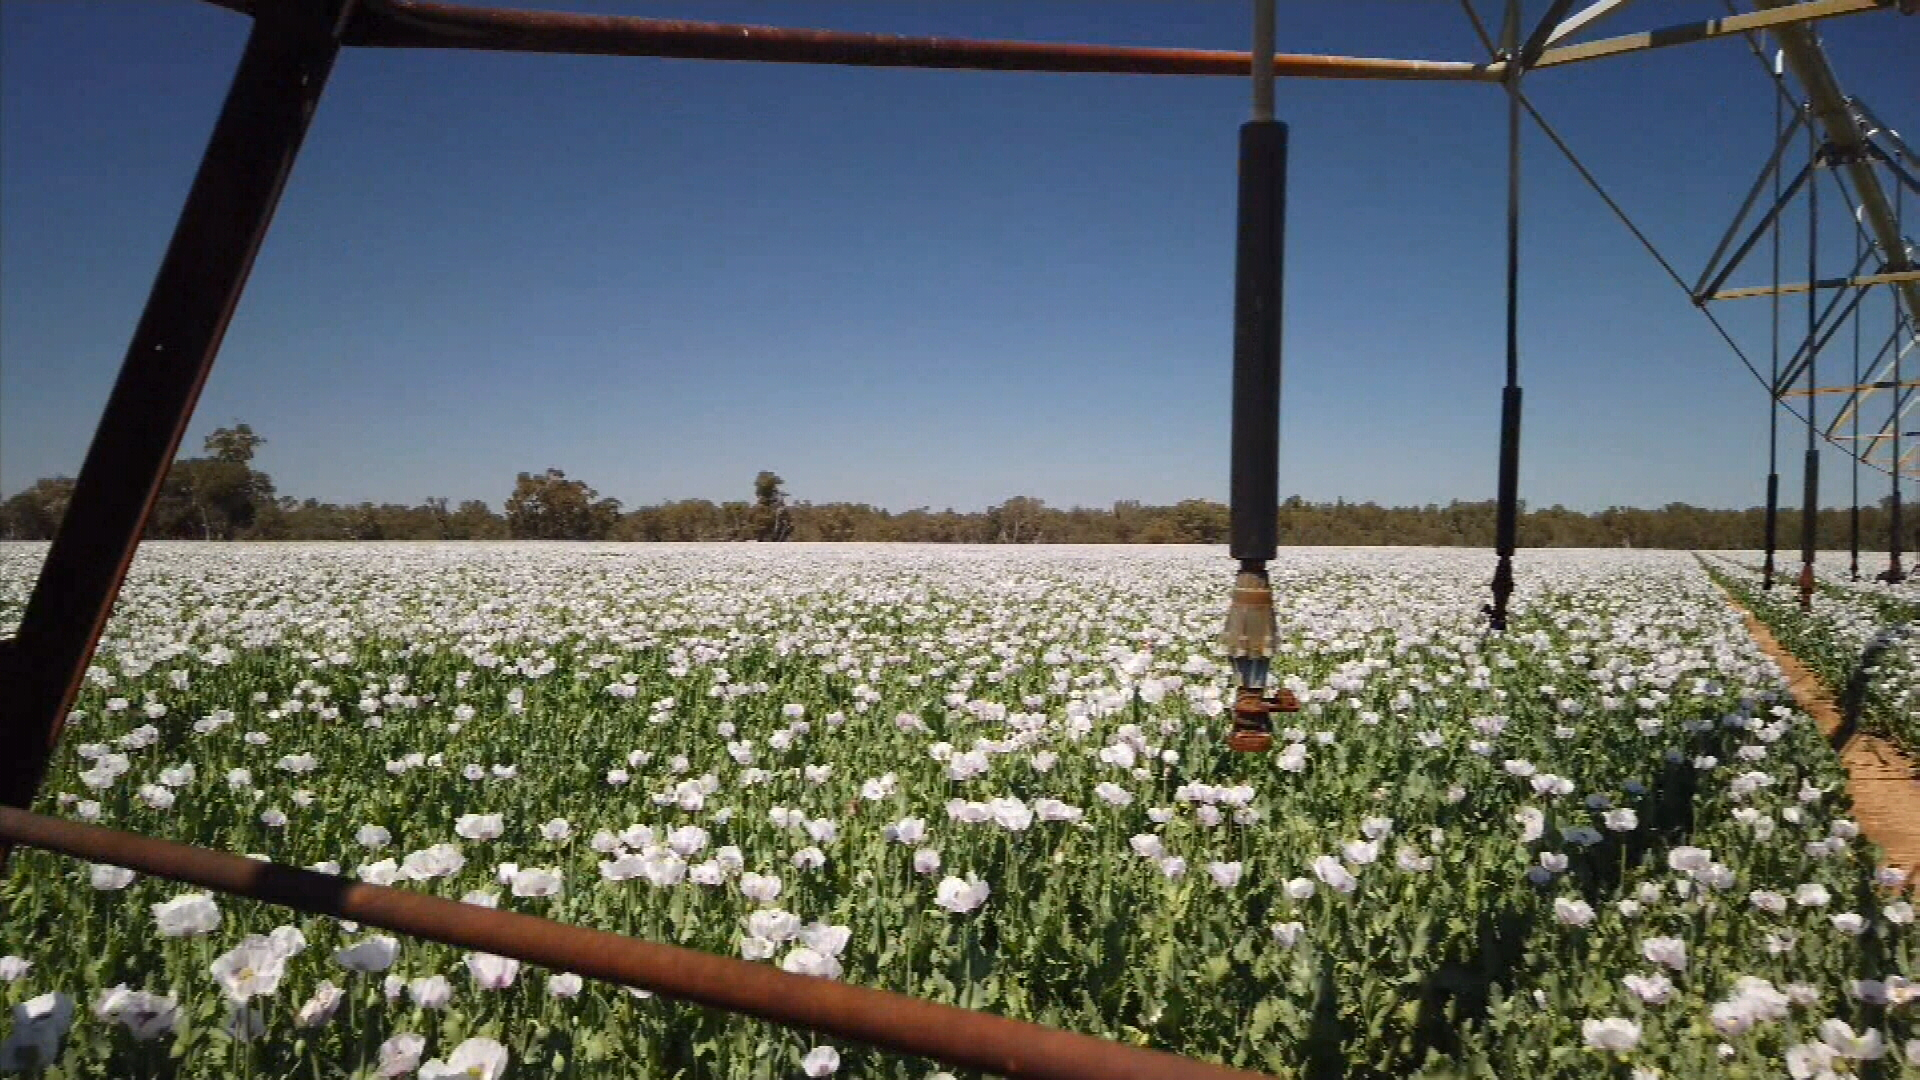 Inside the secretive poppy farms producing opiates for the world